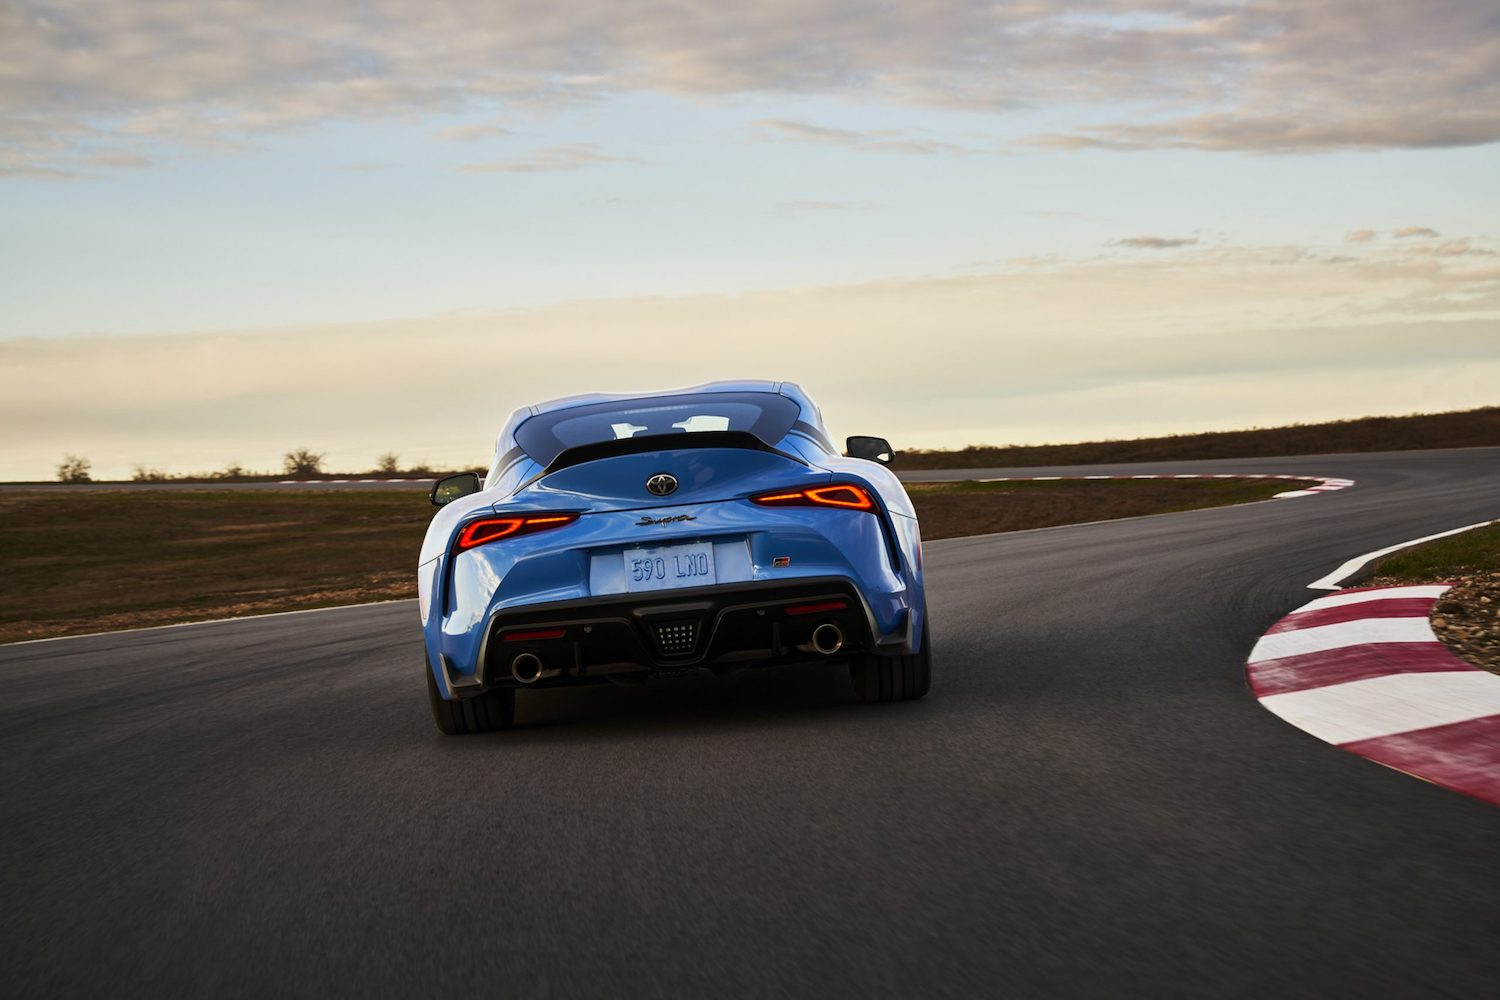 GR Supra A91 Edition rear on track action